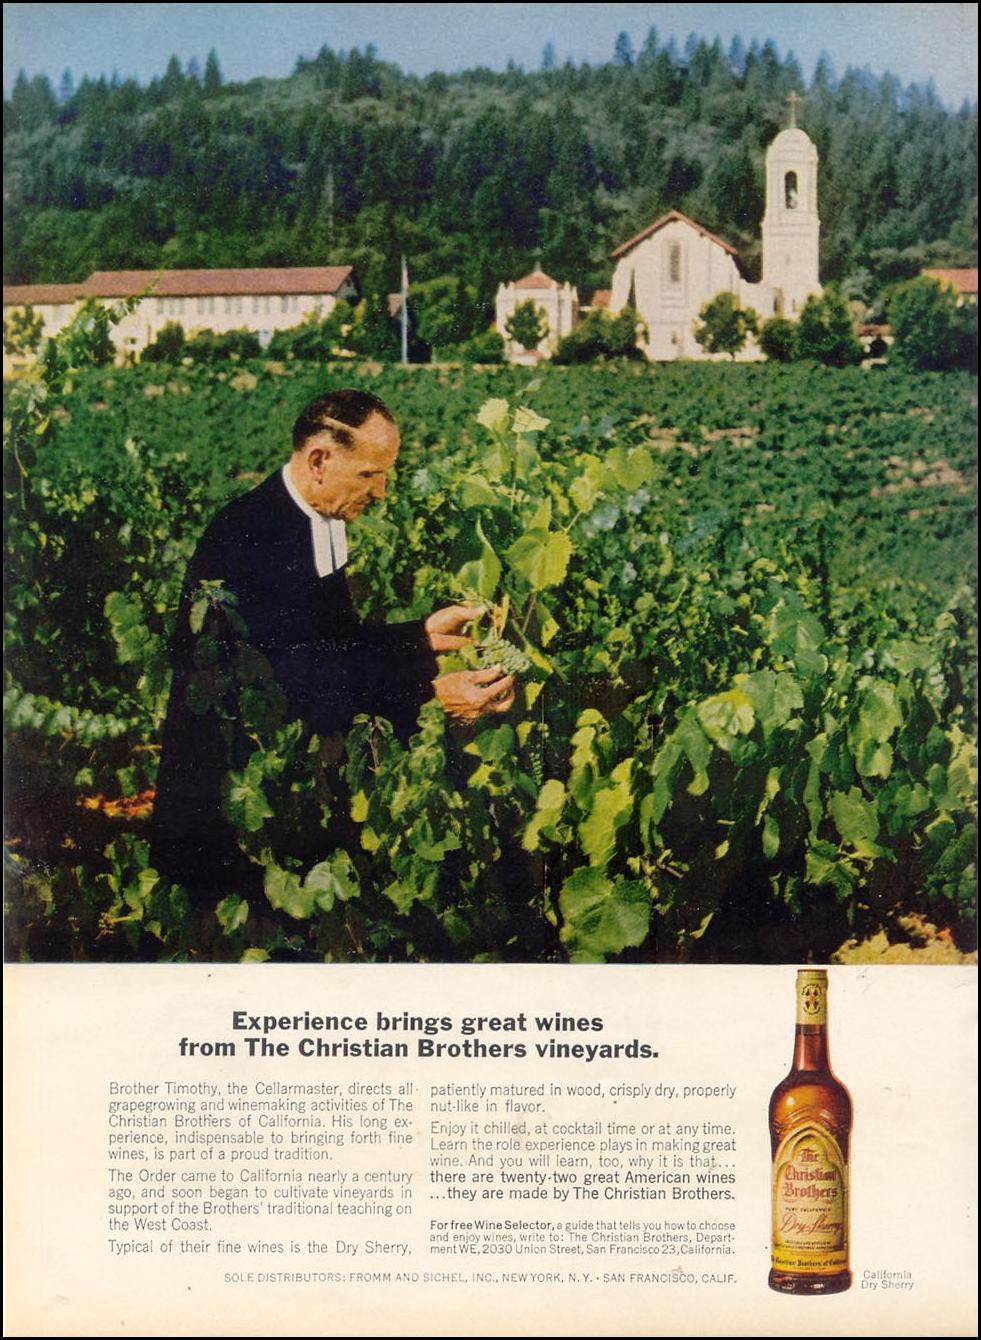 CHRISTIAN BROTHERS WINES TIME 10/25/1963 p. 52